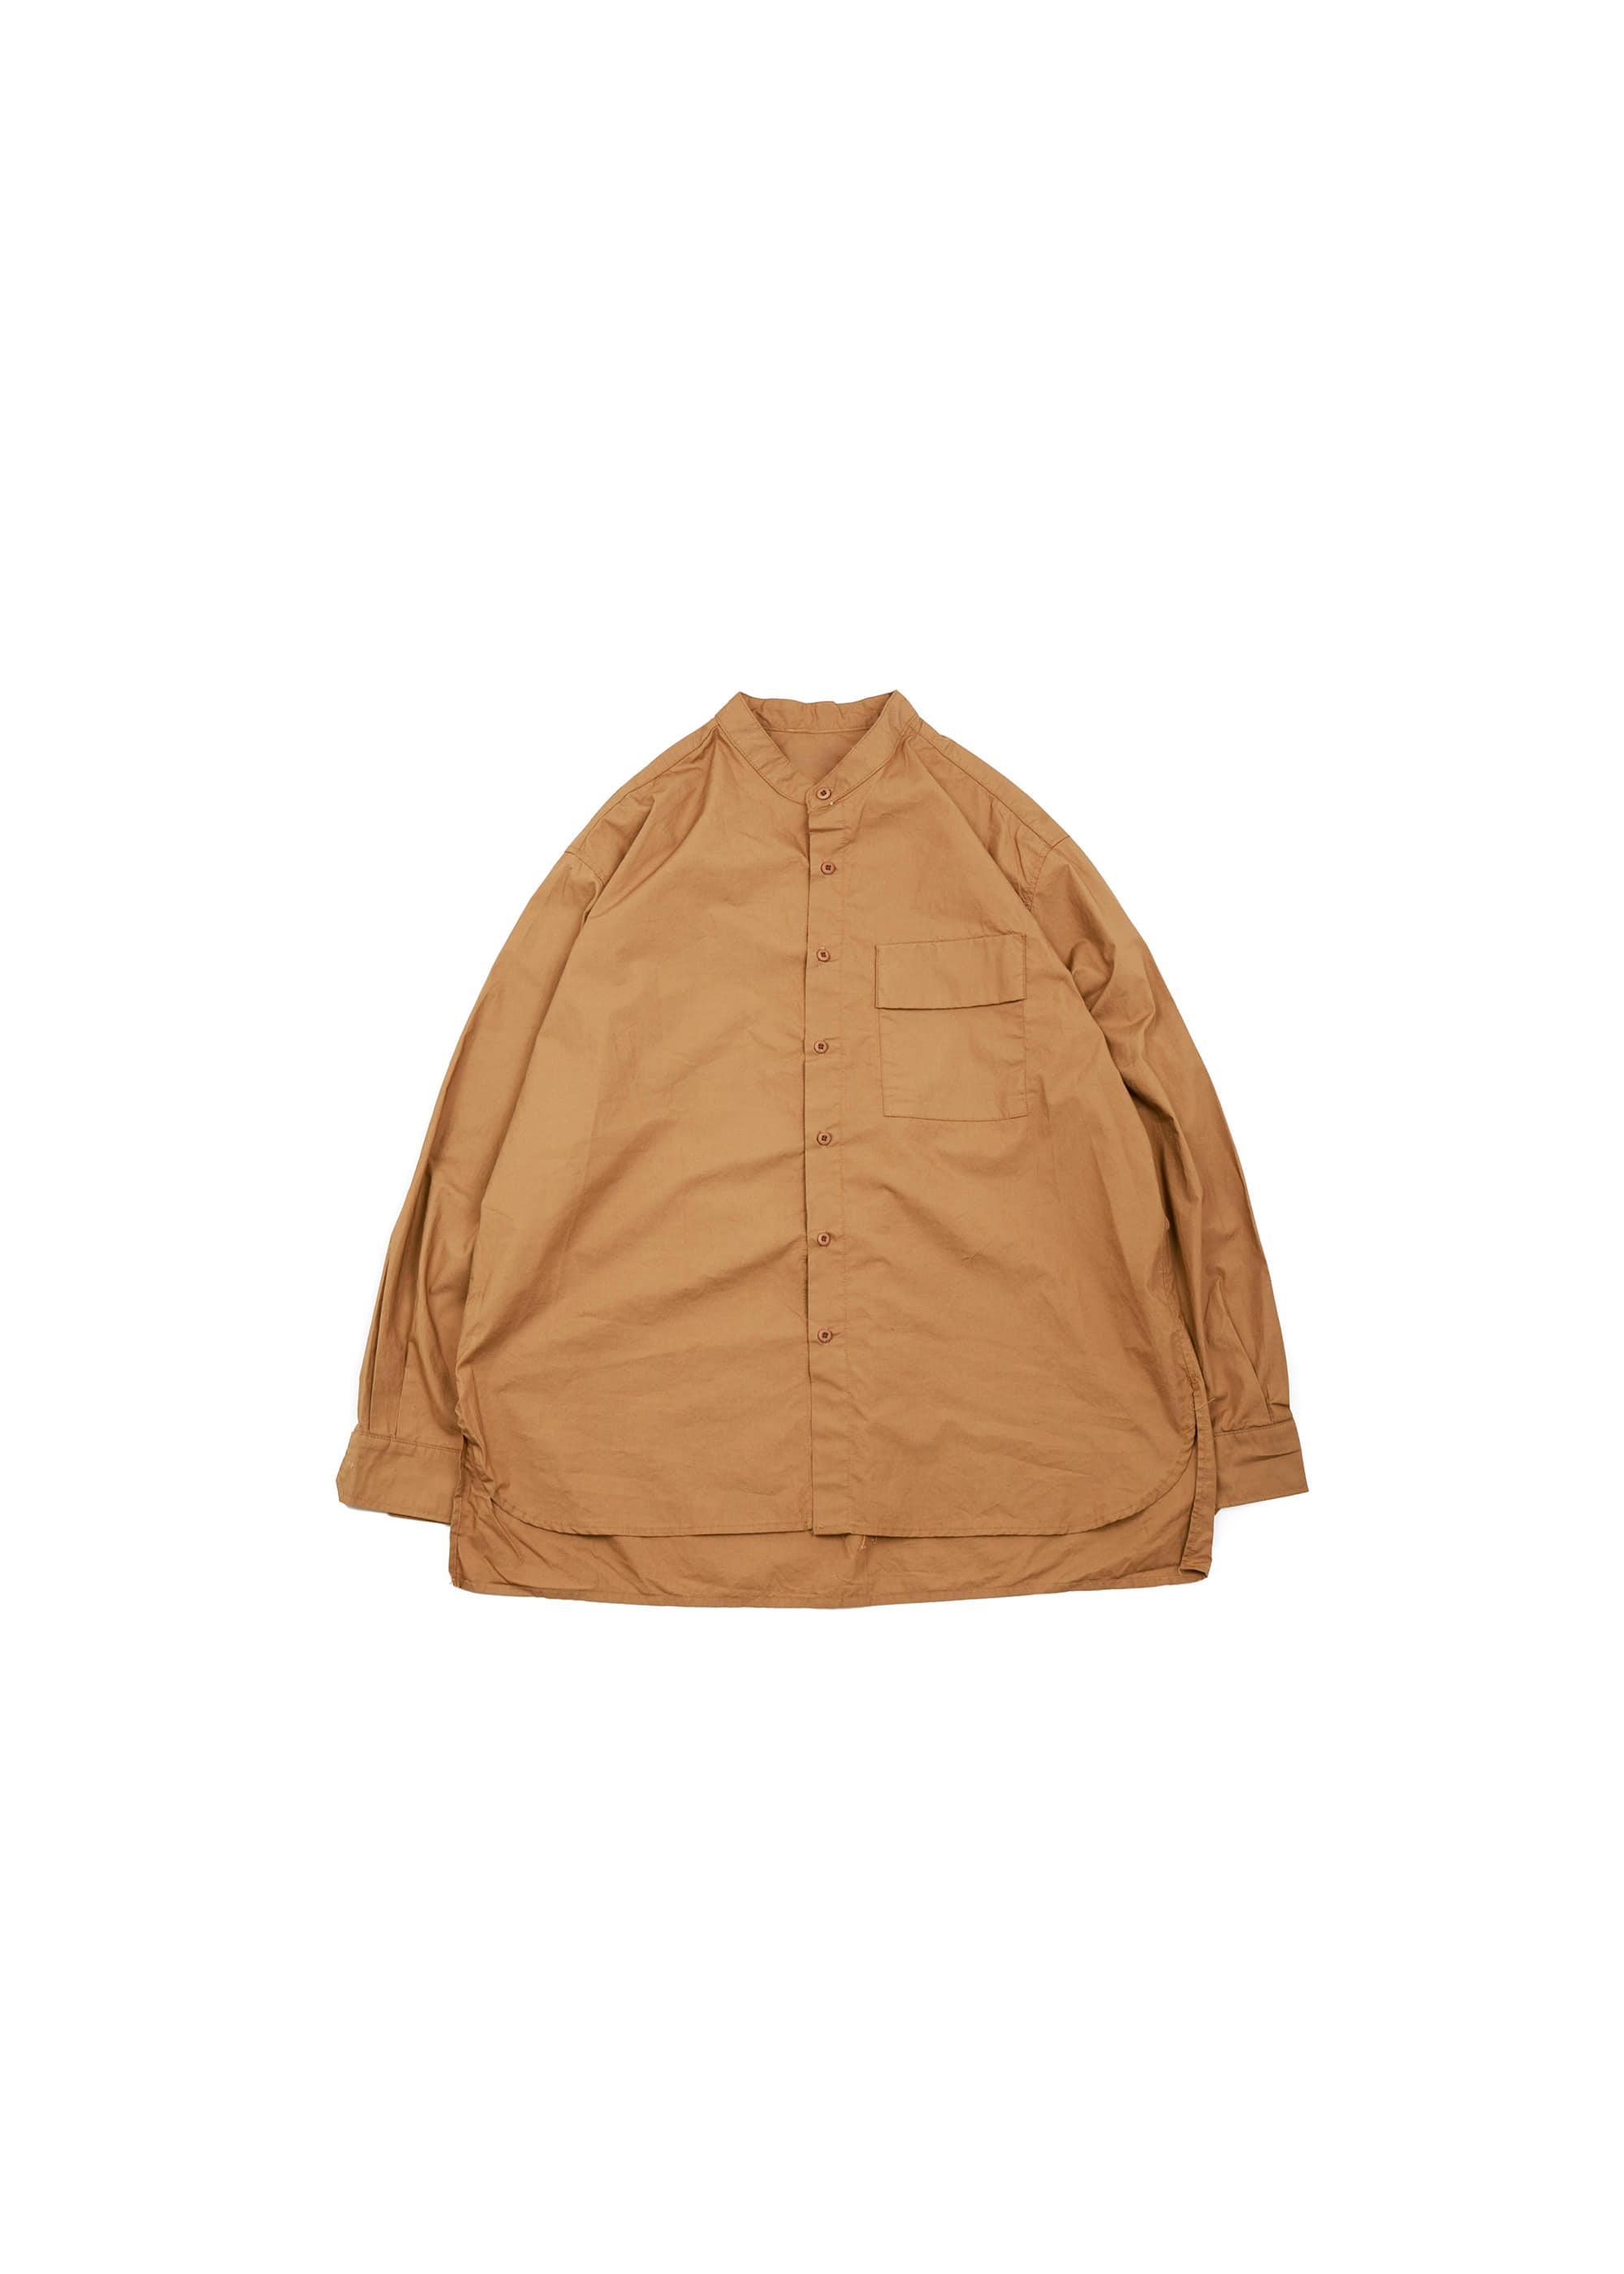 Henly Neck Over Shirts - Brick